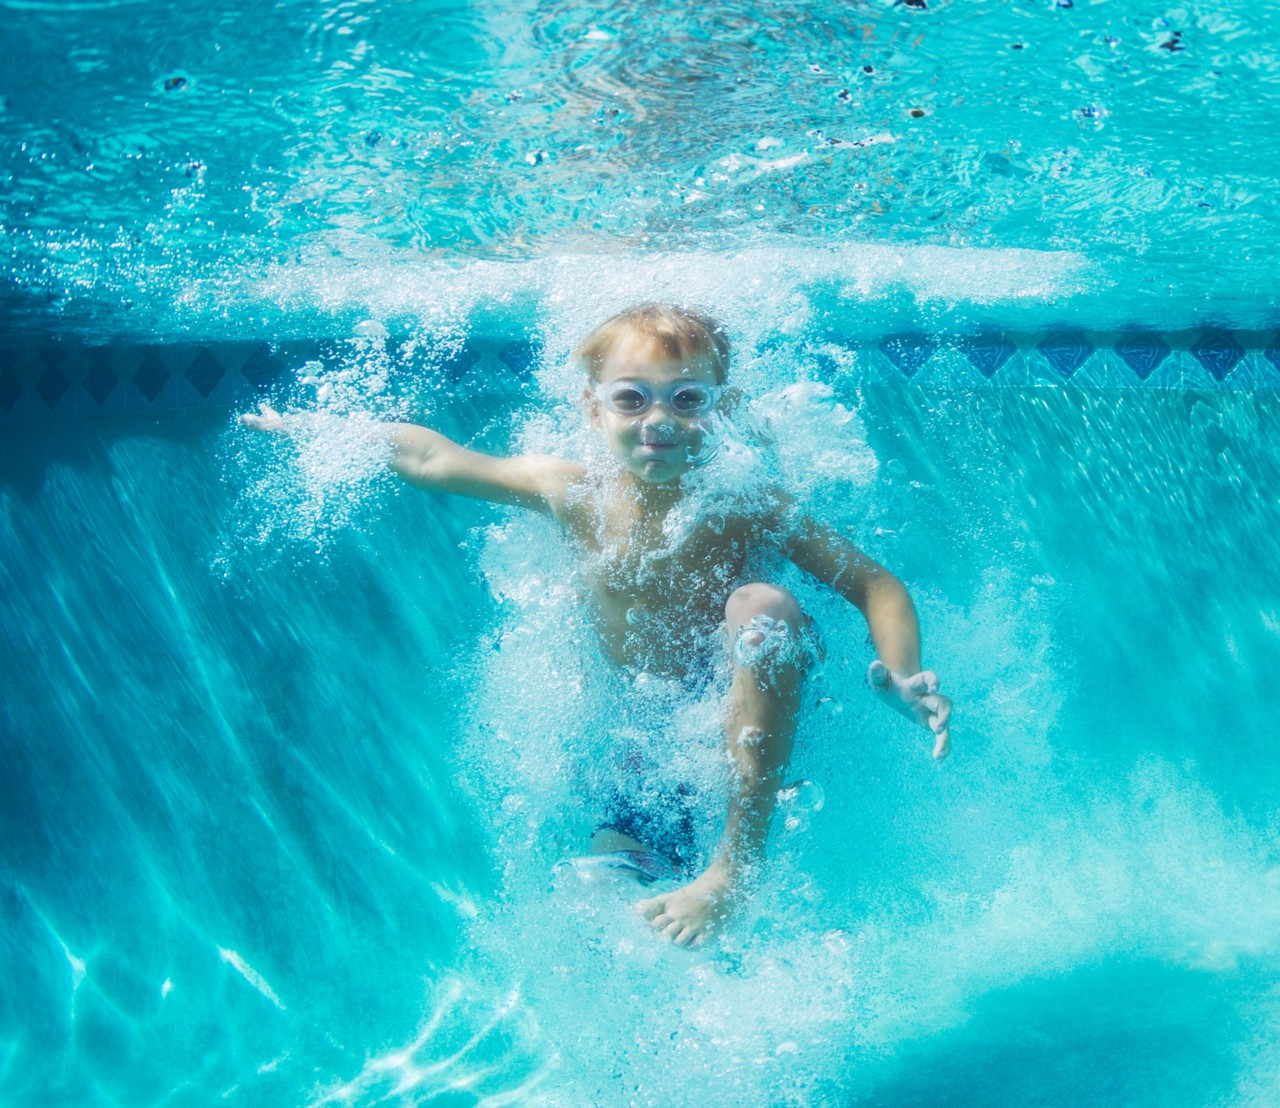 young-boy-in-goggles-jumping-into-blue-pool-underwater-with-bubbles-horizontal-3313x2867-image-file-235768561